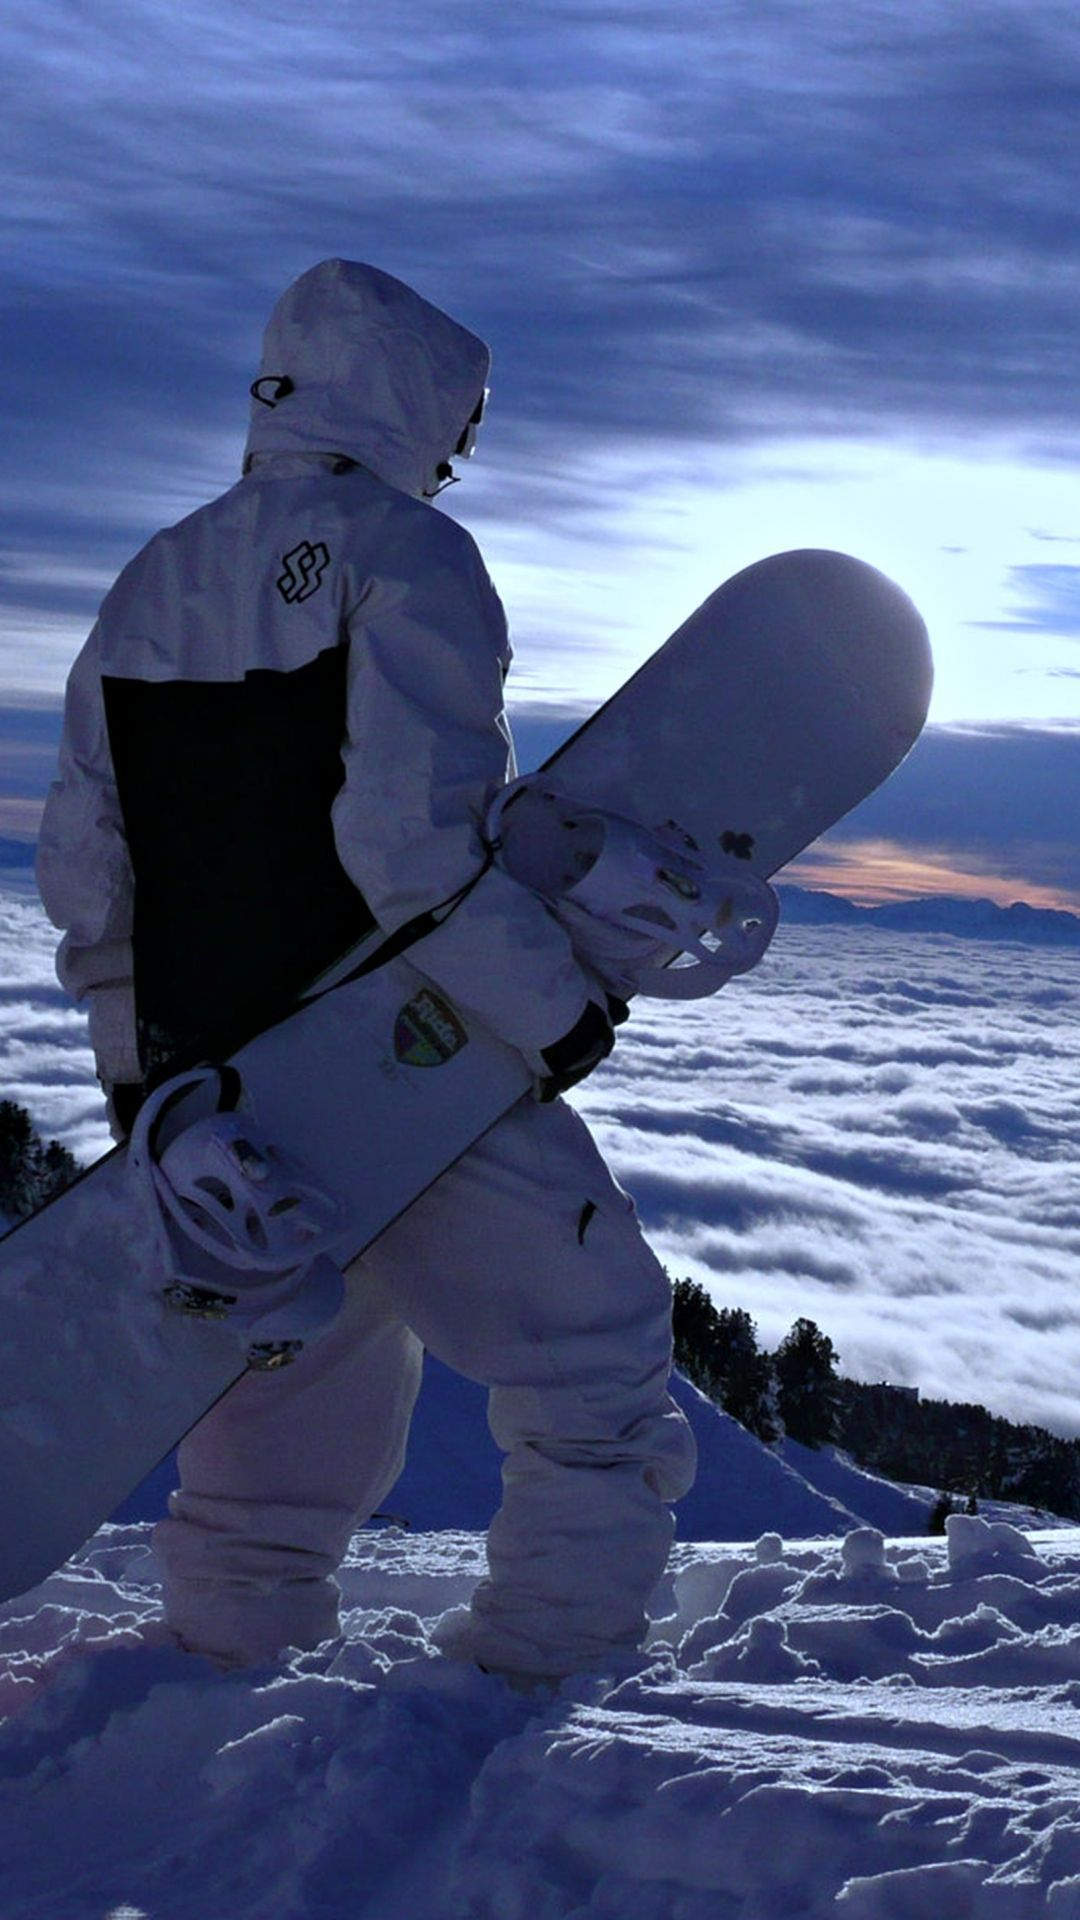 70 Snowboarding Android Iphone Desktop Hd Backgrounds Wallpapers 1080p 4k 1080x1920 2020